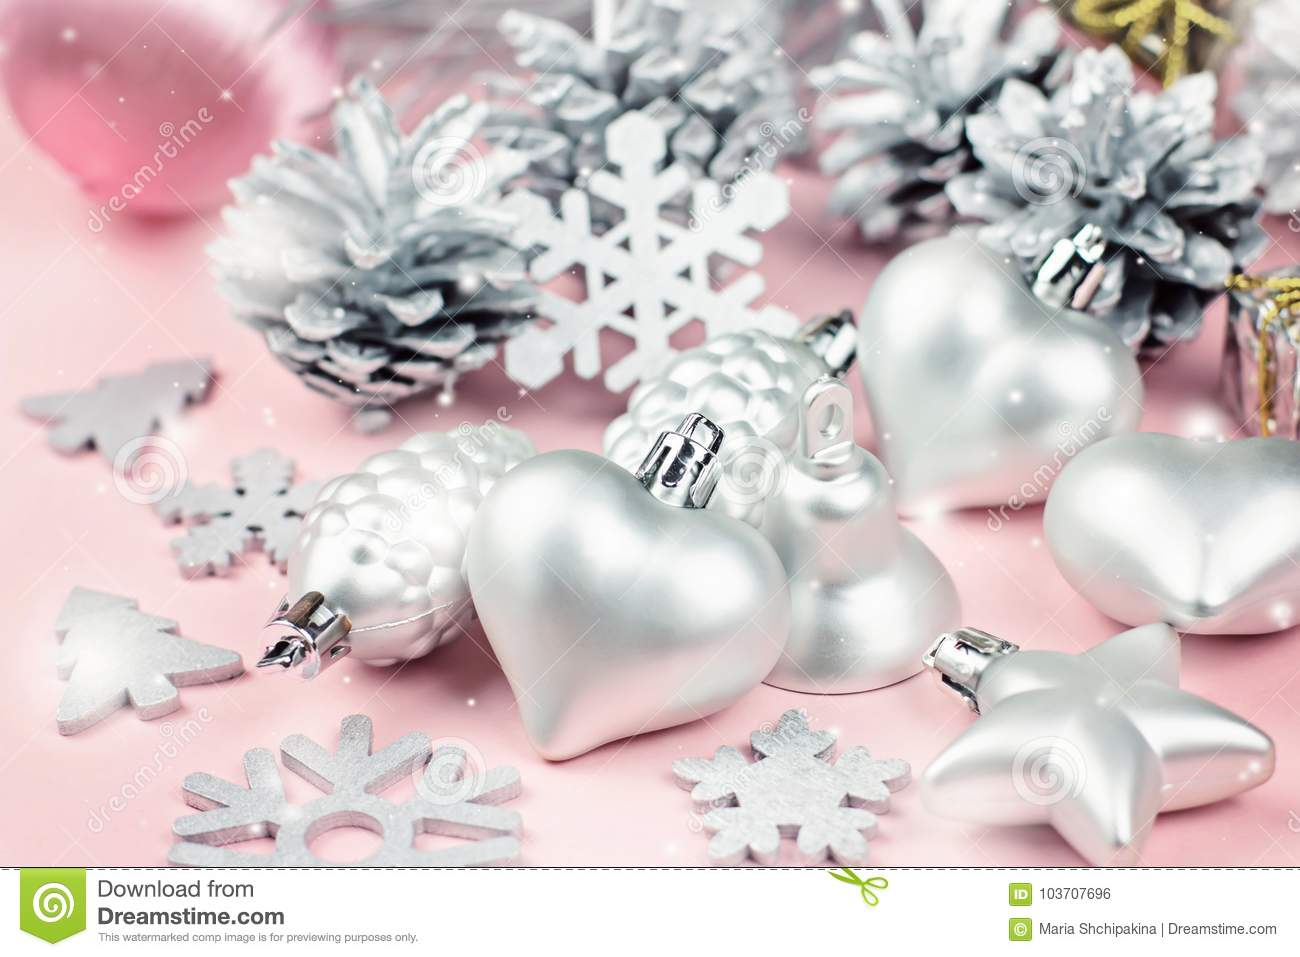 Pastel Christmas Ornaments.Silver Christmas Ornaments Close Up On A Pastel Background